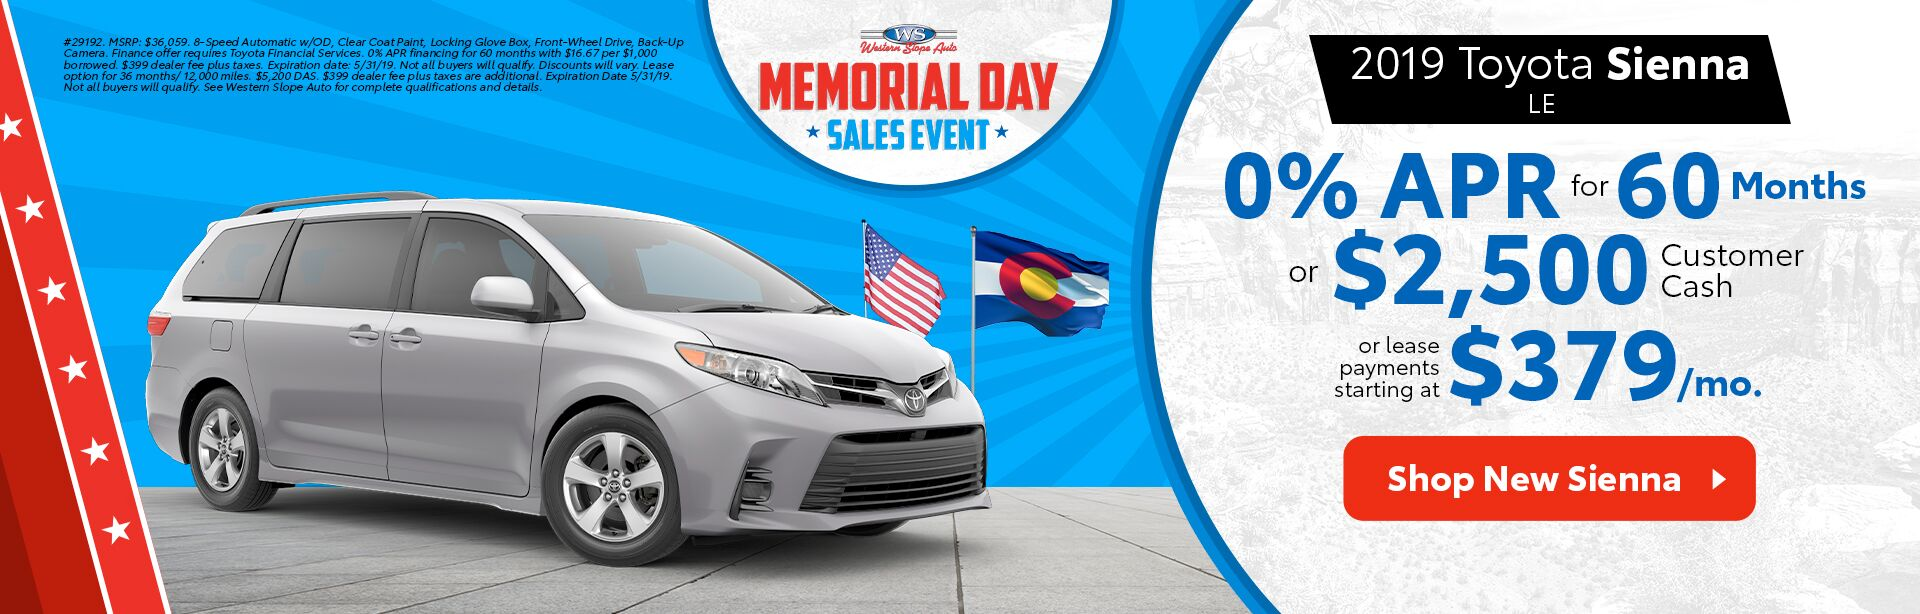 2019 Sienna / Memorial Day Sales Event